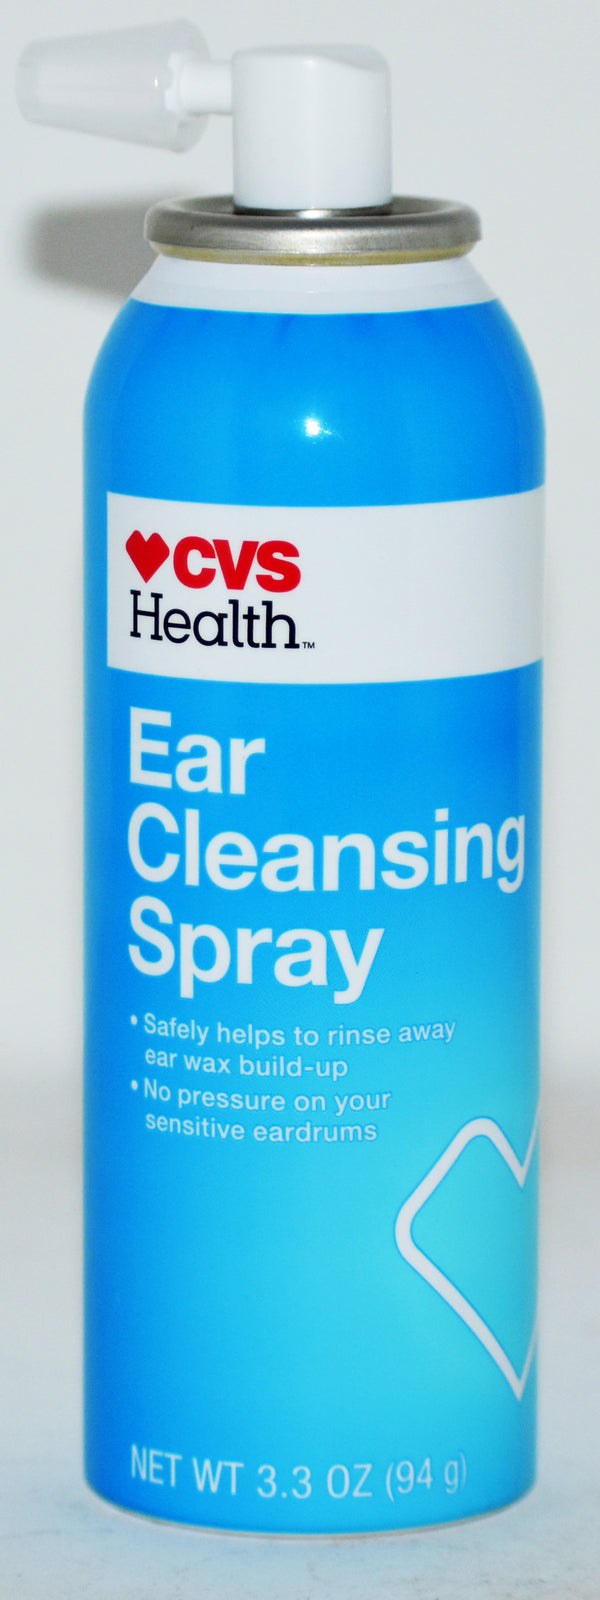 CVS Health Ear Cleansing Spray, 3.3 oz